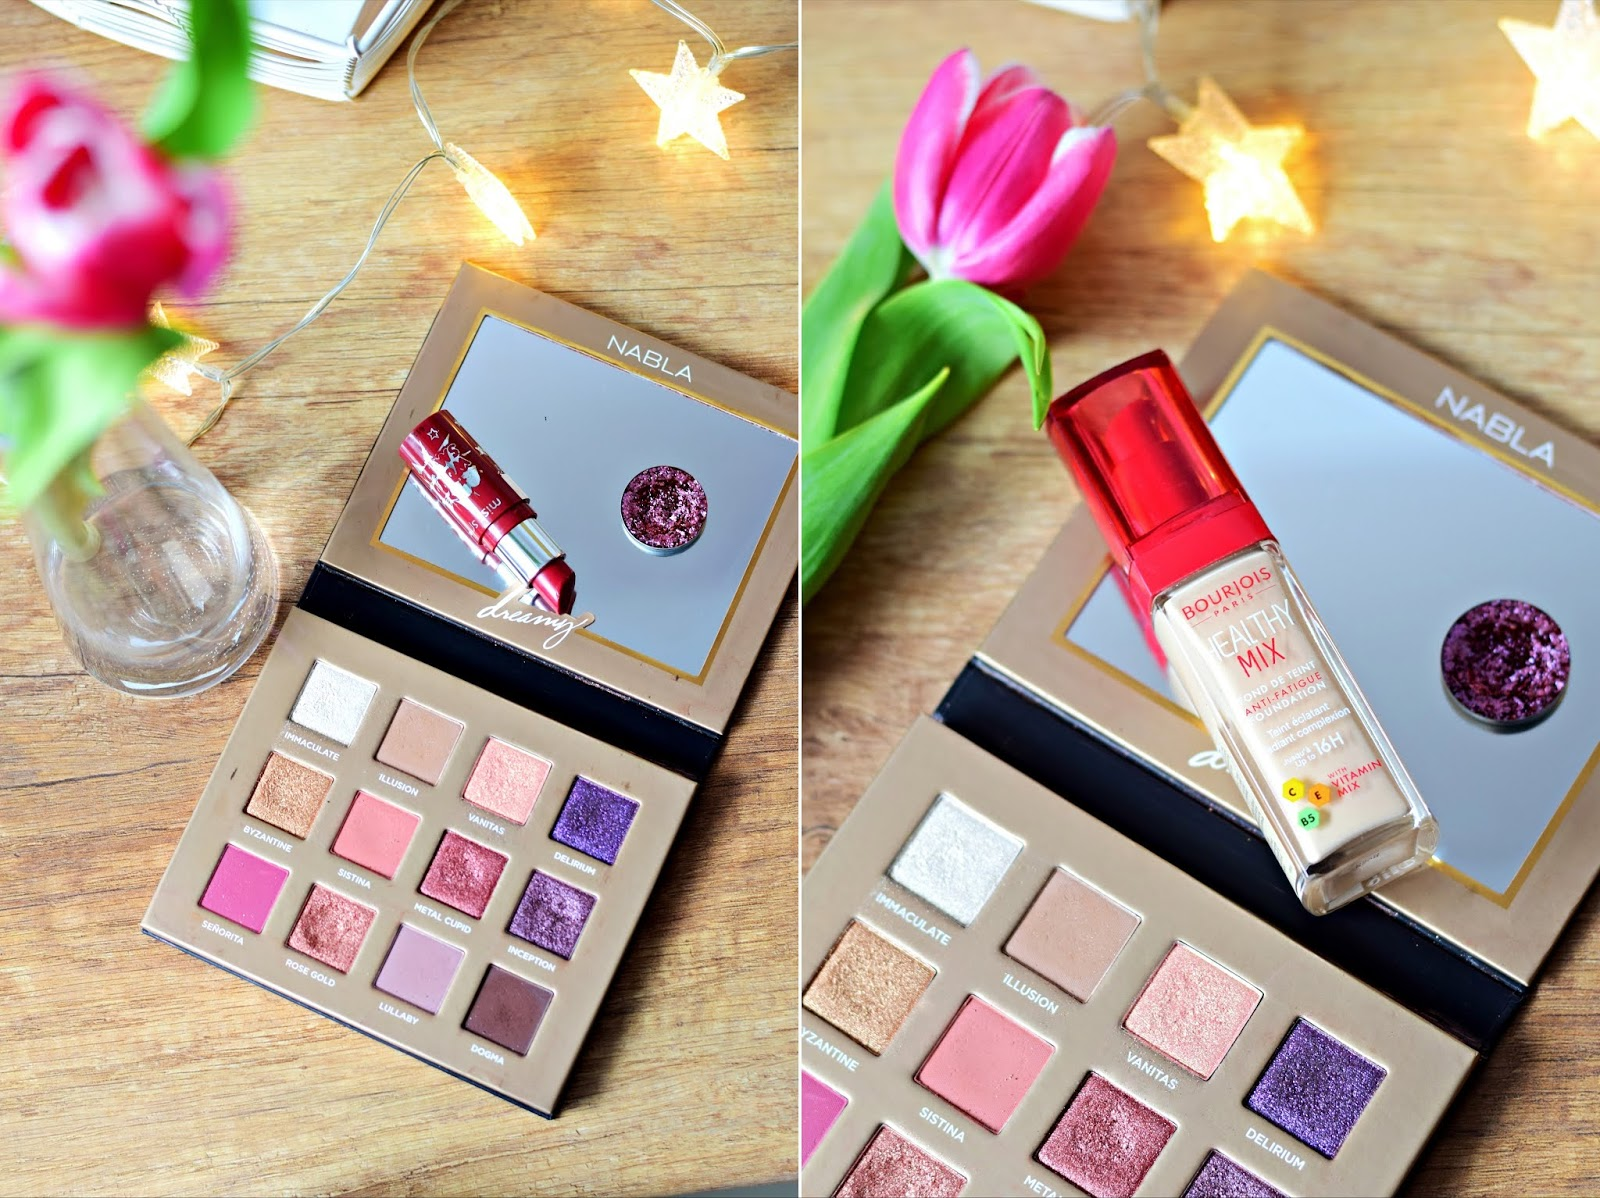 nabla_dreamy_miss_sporty_wonder_smooth_blog_ulubieńcy_bourjois_healthy_mix_no50